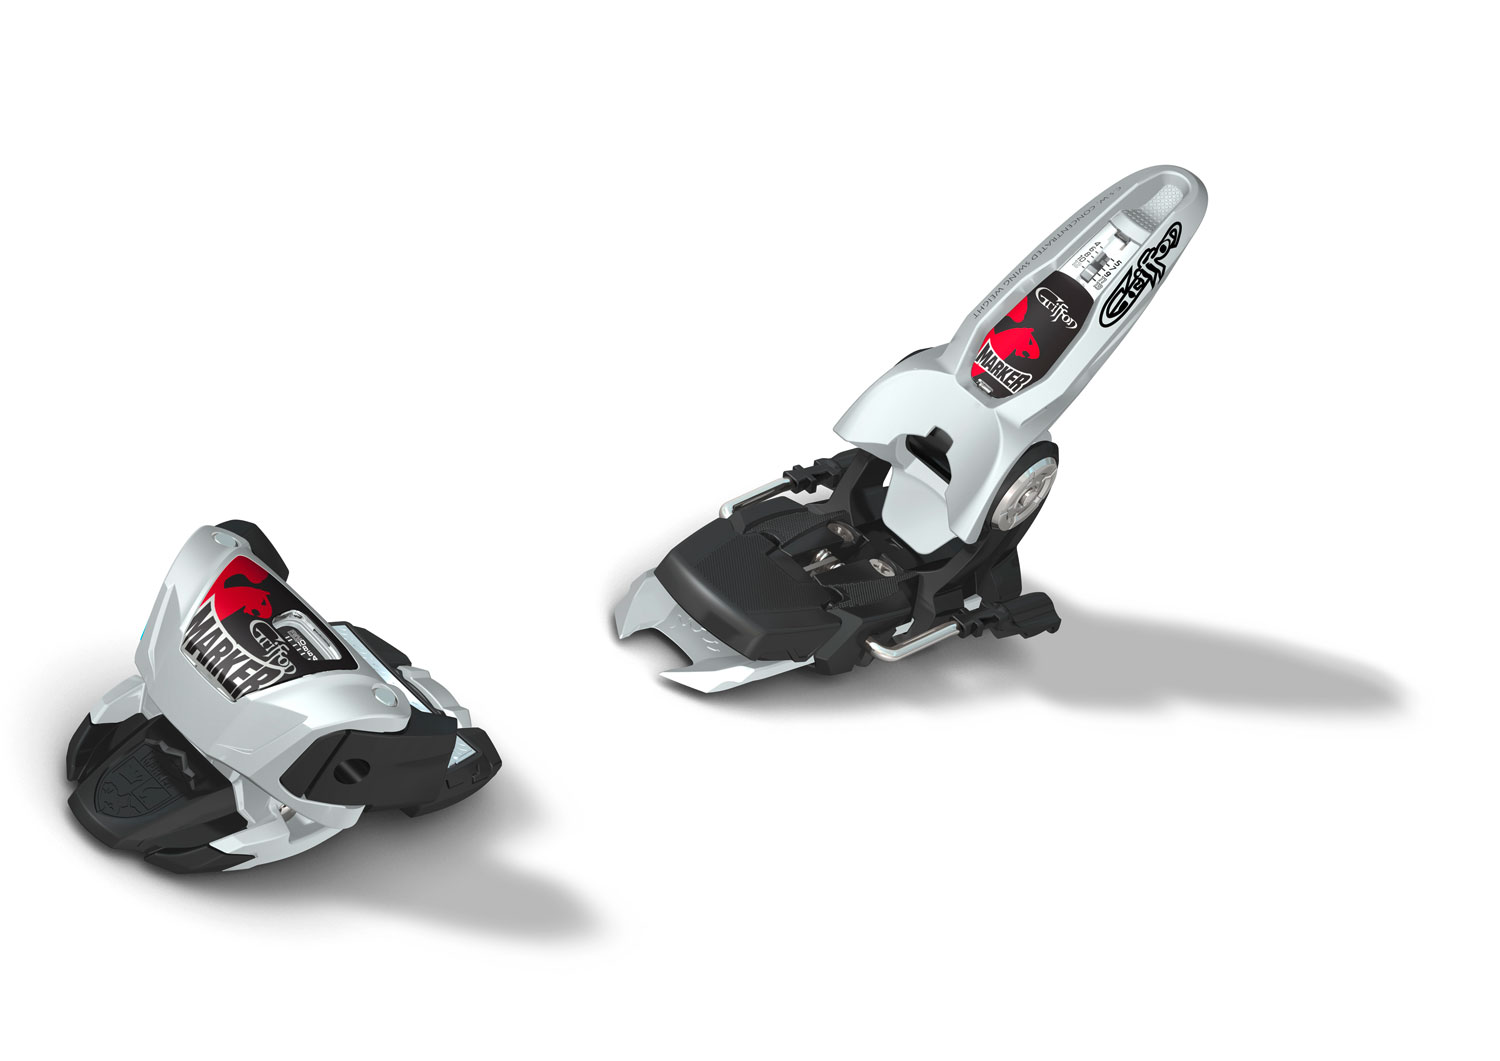 Ski The Griffon has earned a place as the go-to freeskiing binding in the market for anyone looking for a high performance, 13 DIN freeskiing binding.Key Features of the Marker Griffon Ski Bindings: Stand Height Without Ski Only 19 Mm Power Width Design For Superior Power Transmission From The Big Mtn. To The Pipe Cross-Axis Toe Spring And Short Overall Length For Better Ski Flex And Lower Swing Weight No-Pull-Out Screws New 4-13 Din Range On The Griffon New: The Jester And The Griffon Feature A Height-Adjustable AFD For Alpine Boots Din Range 4-13 Recom. Skier's Weight 80+ Lbs. Stand Height W/O Ski 22 Mm Toe System Triple Pivot Compact Gliding AFD Height Adjustable, Alpine Step-In Heel Comfort 2 EPS System Toe Height Adjustability Freeride Brake No-Pull-Out Screws (Heel) - $159.95